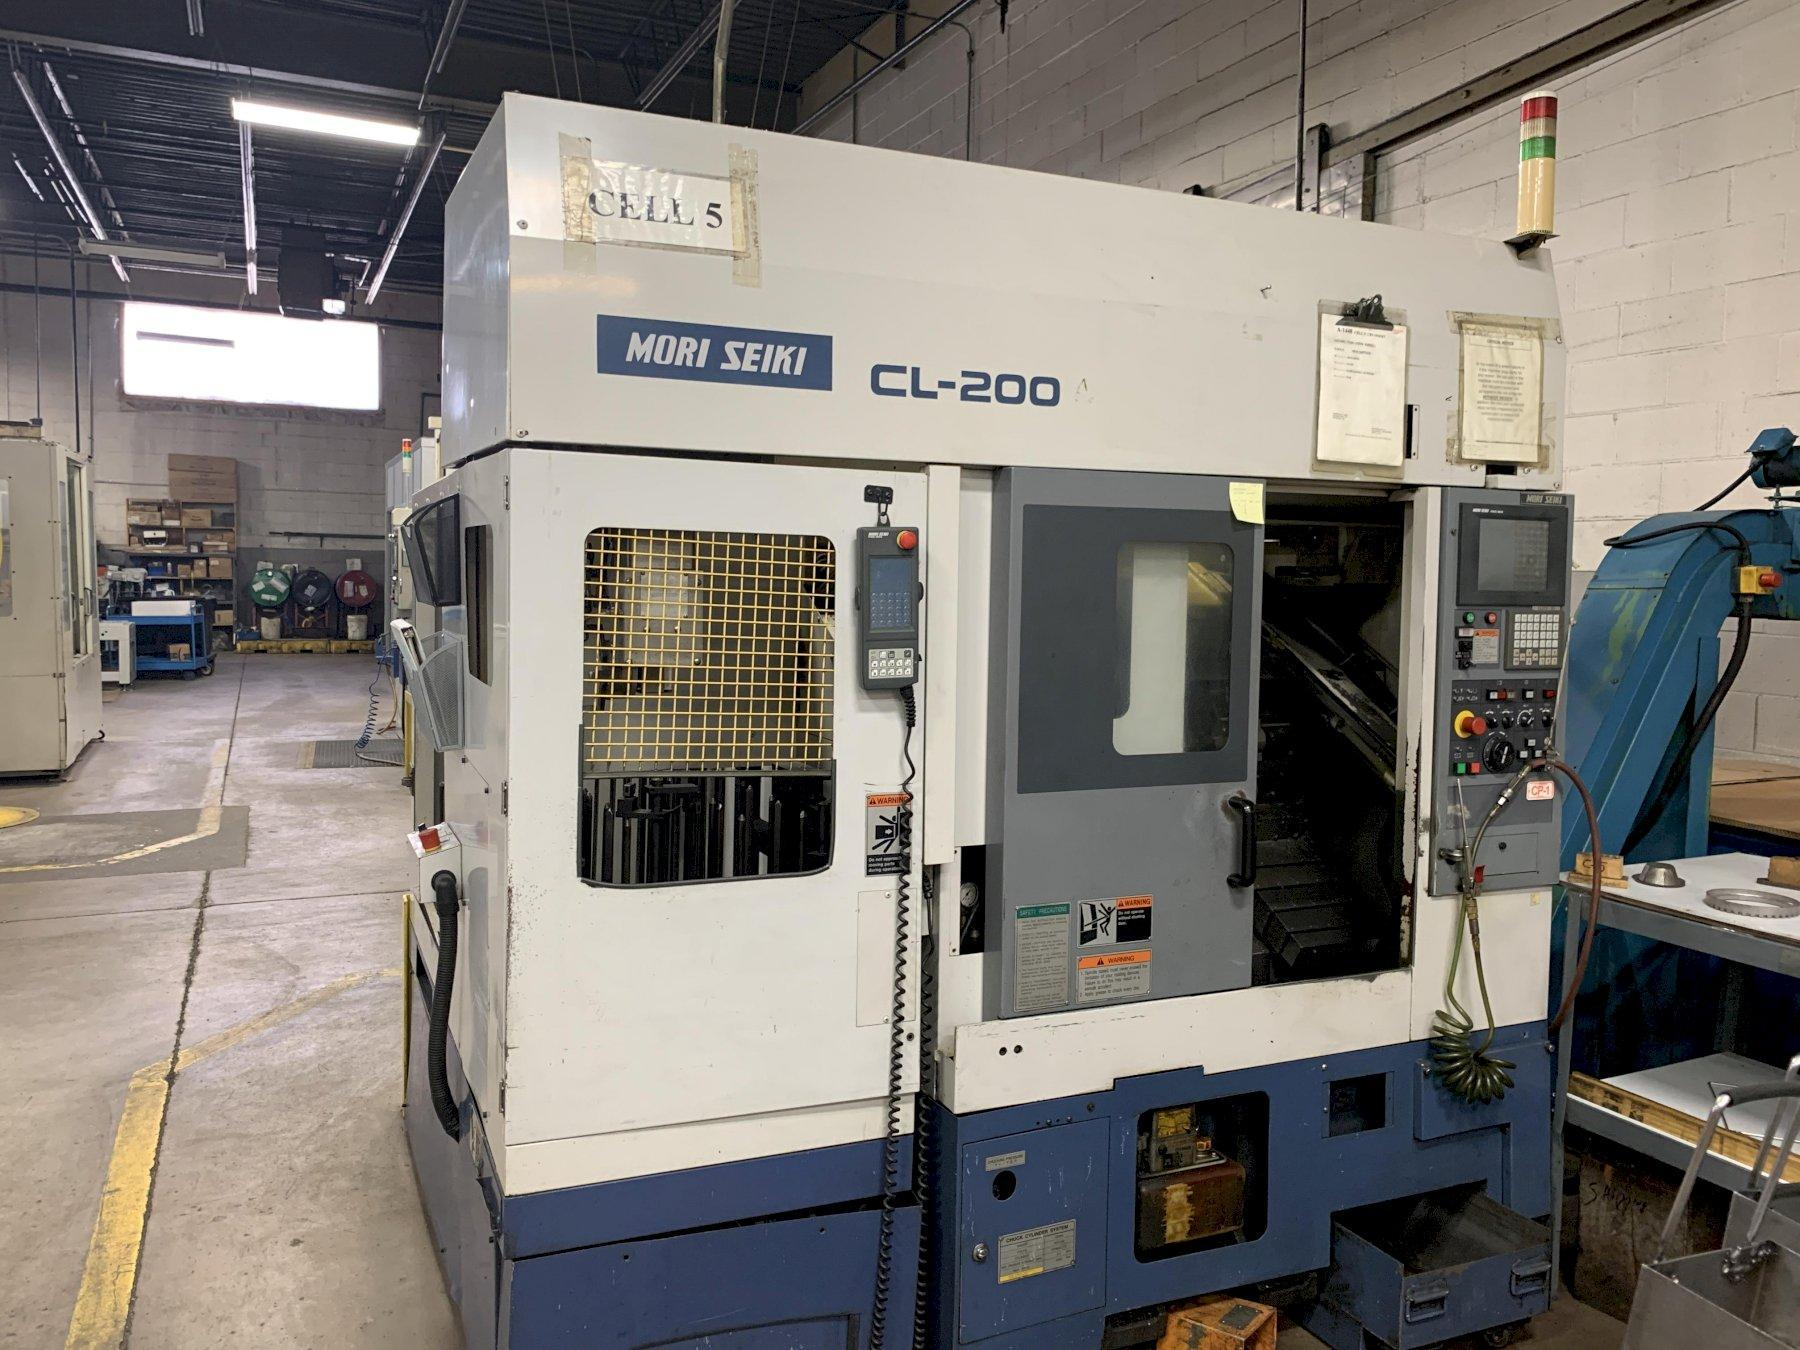 MORI SEIKI CL-200A CNC LATHE WITH GANTRY LOADER